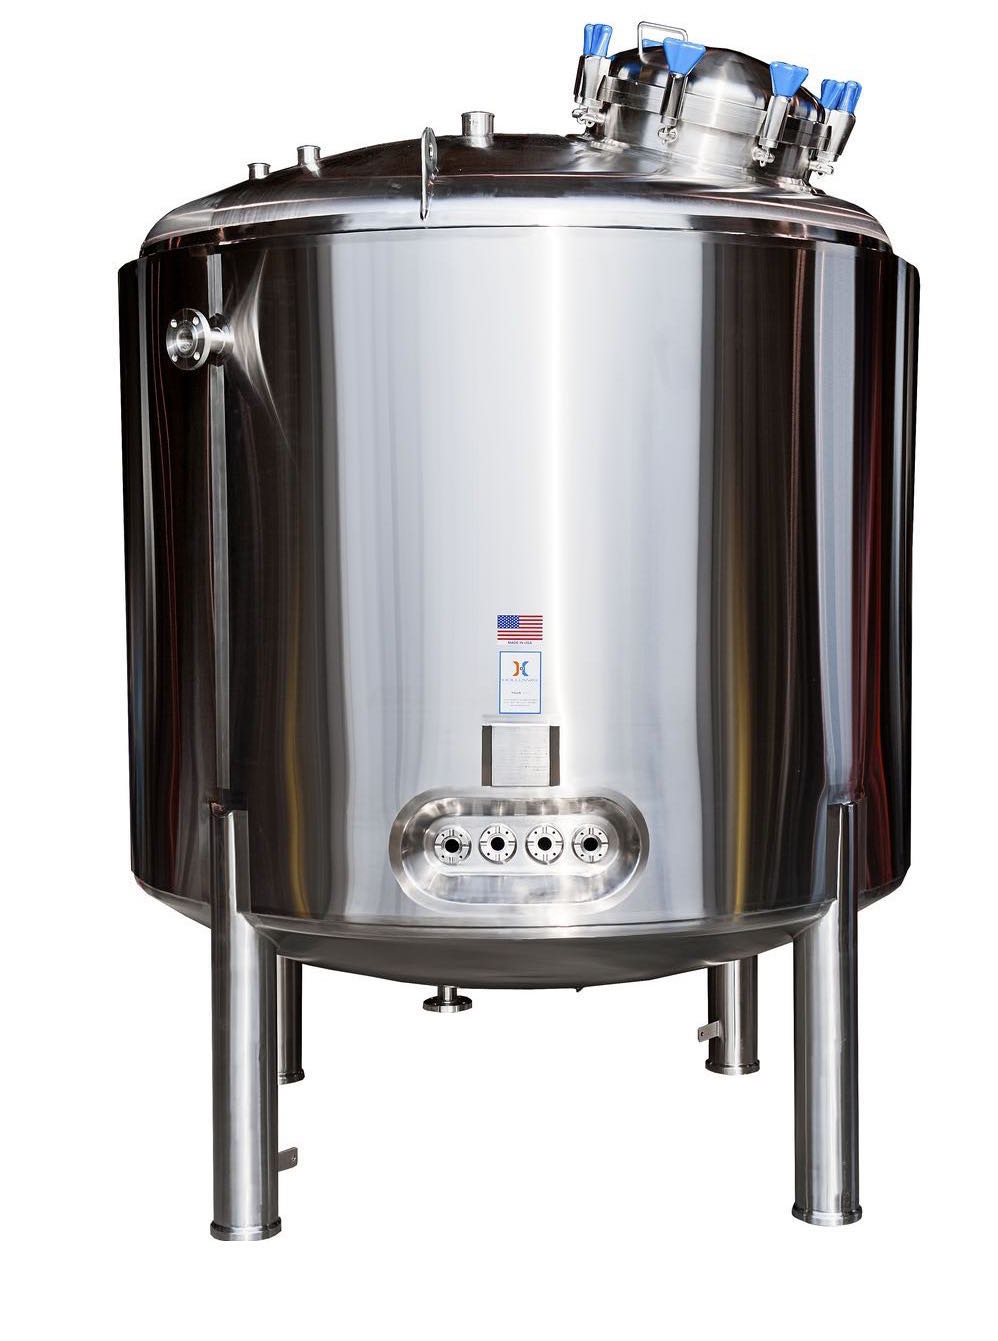 Sterile water for injections is safe in this WFI Tank by Holloway America.